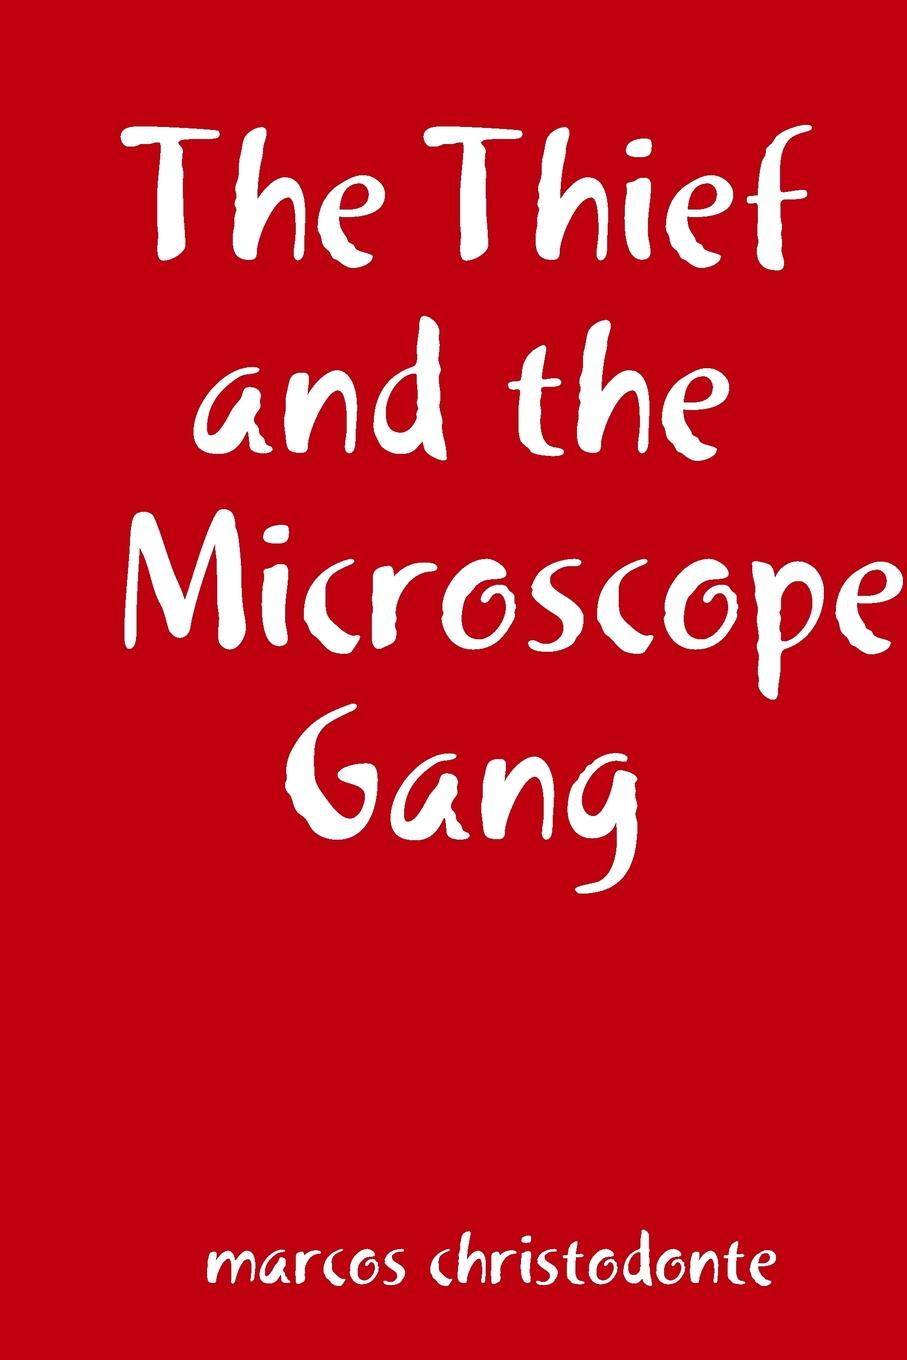 marcos christodonte The Thief and the Microscope Gang the art of thief